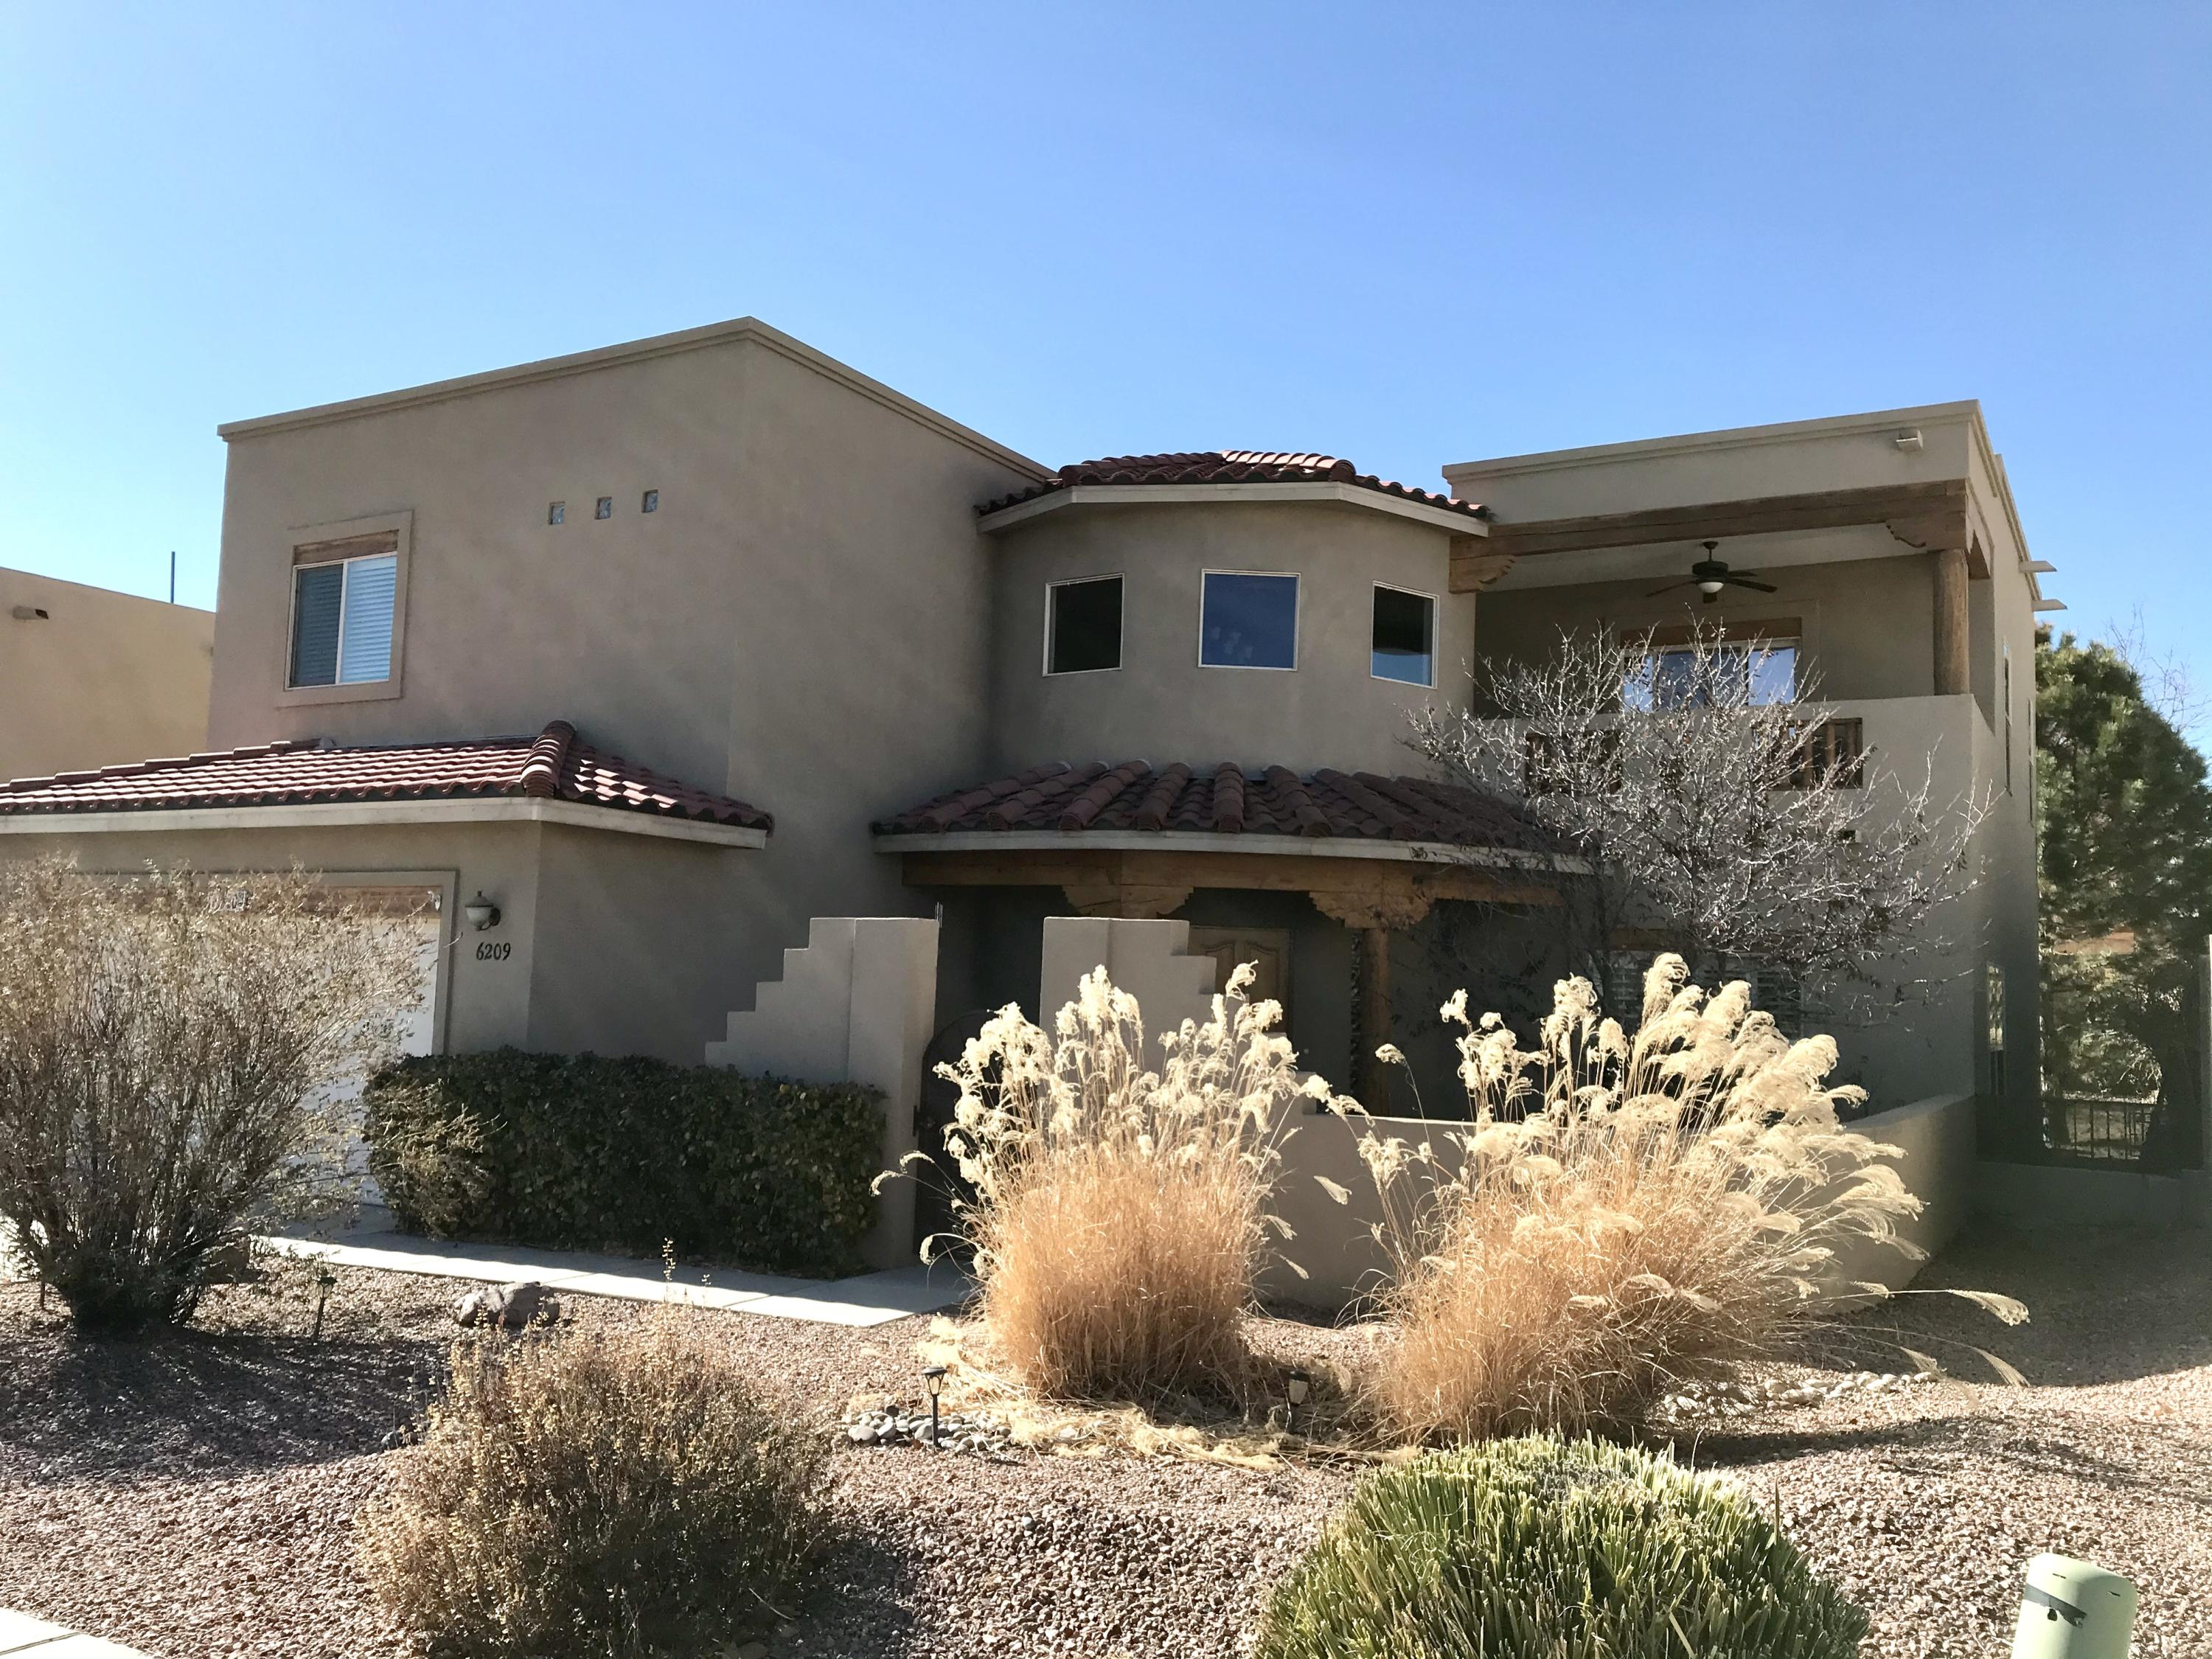 6209 WHITEMAN Drive NW, Albuquerque, NM 87120 - Albuquerque, NM real estate listing